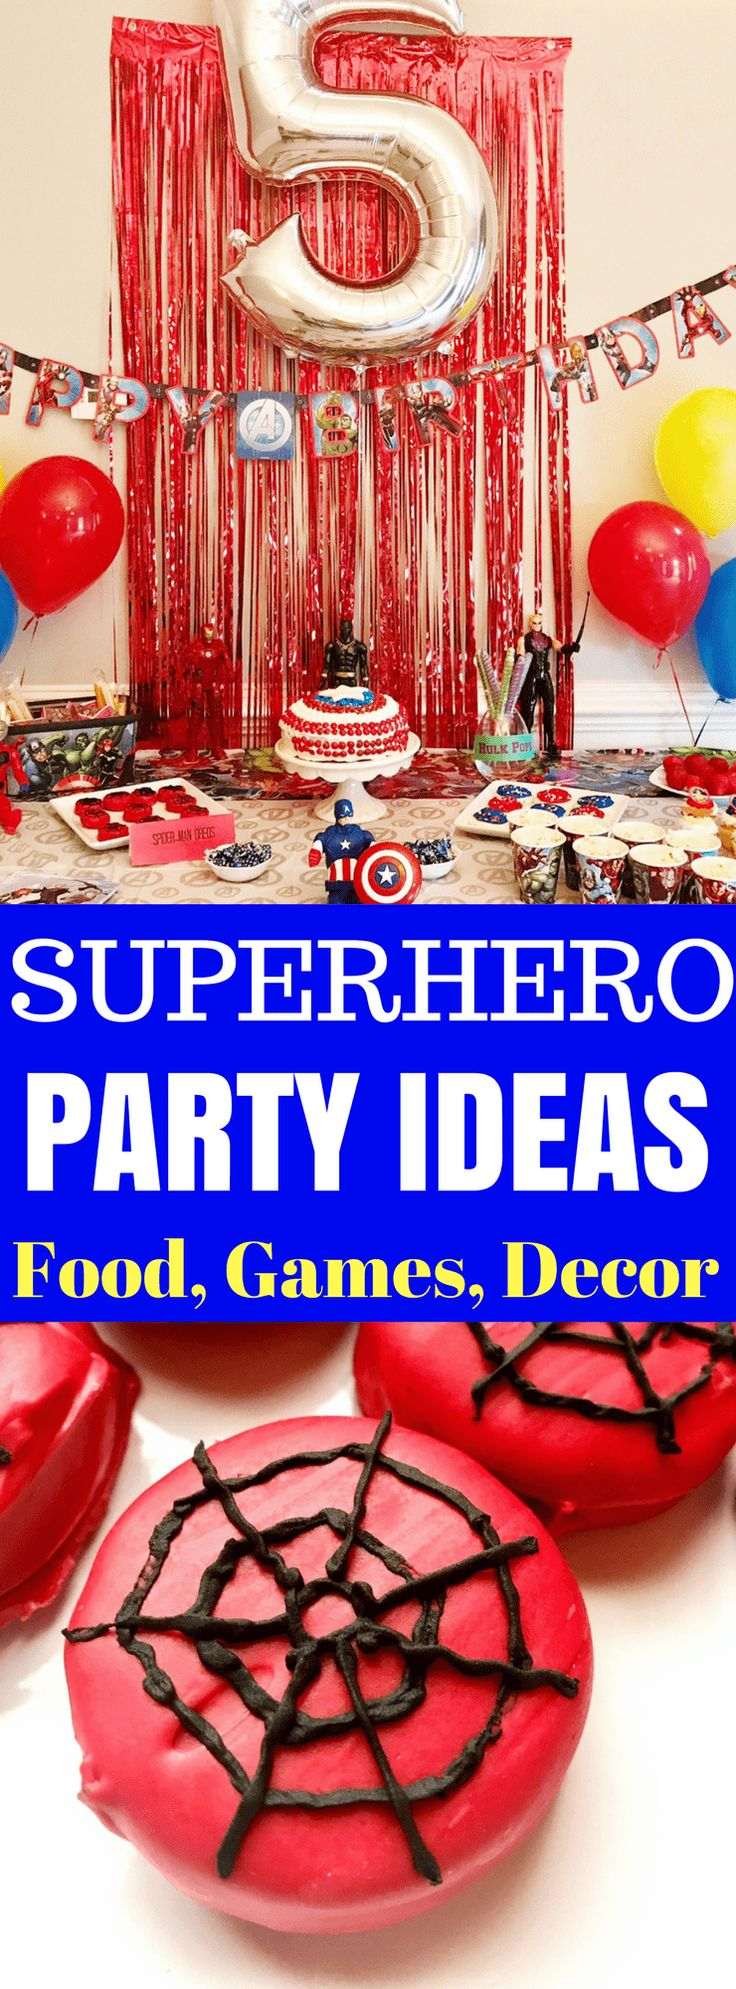 Check out these Superhero Party Ideas - perfect for birthday parties, kids parties, Halloween parties and more for your favorite superhero and Avengers fans! I've got a Captain America cake, Spider-Man Oreos, and Avengers party games!